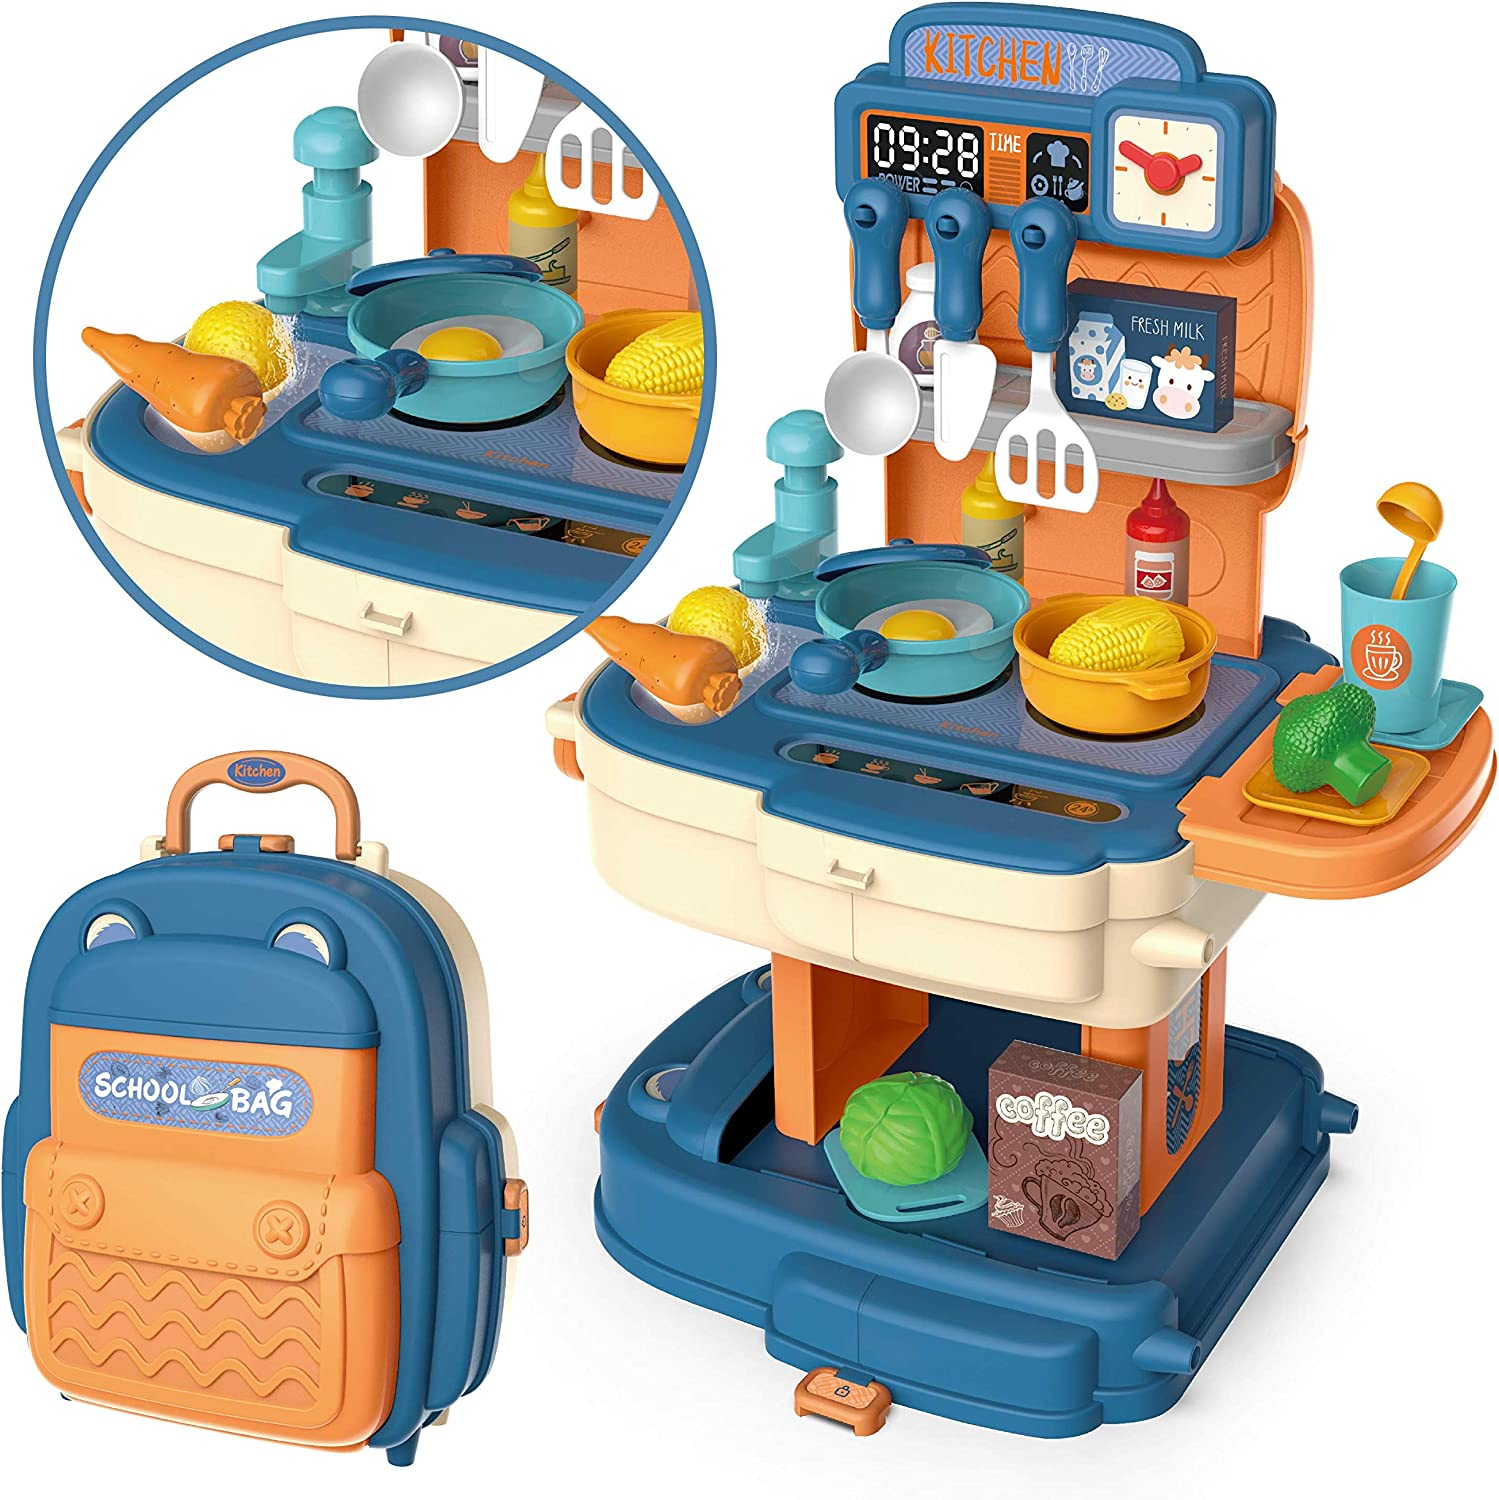 JOYIN Little Kitchen Pretend Playset with Portable Backpack Kids Toy Kitchen Cookware Including Play Food, Pots, Pans, Cooking Utensils and Other Accessories for Girls Boys